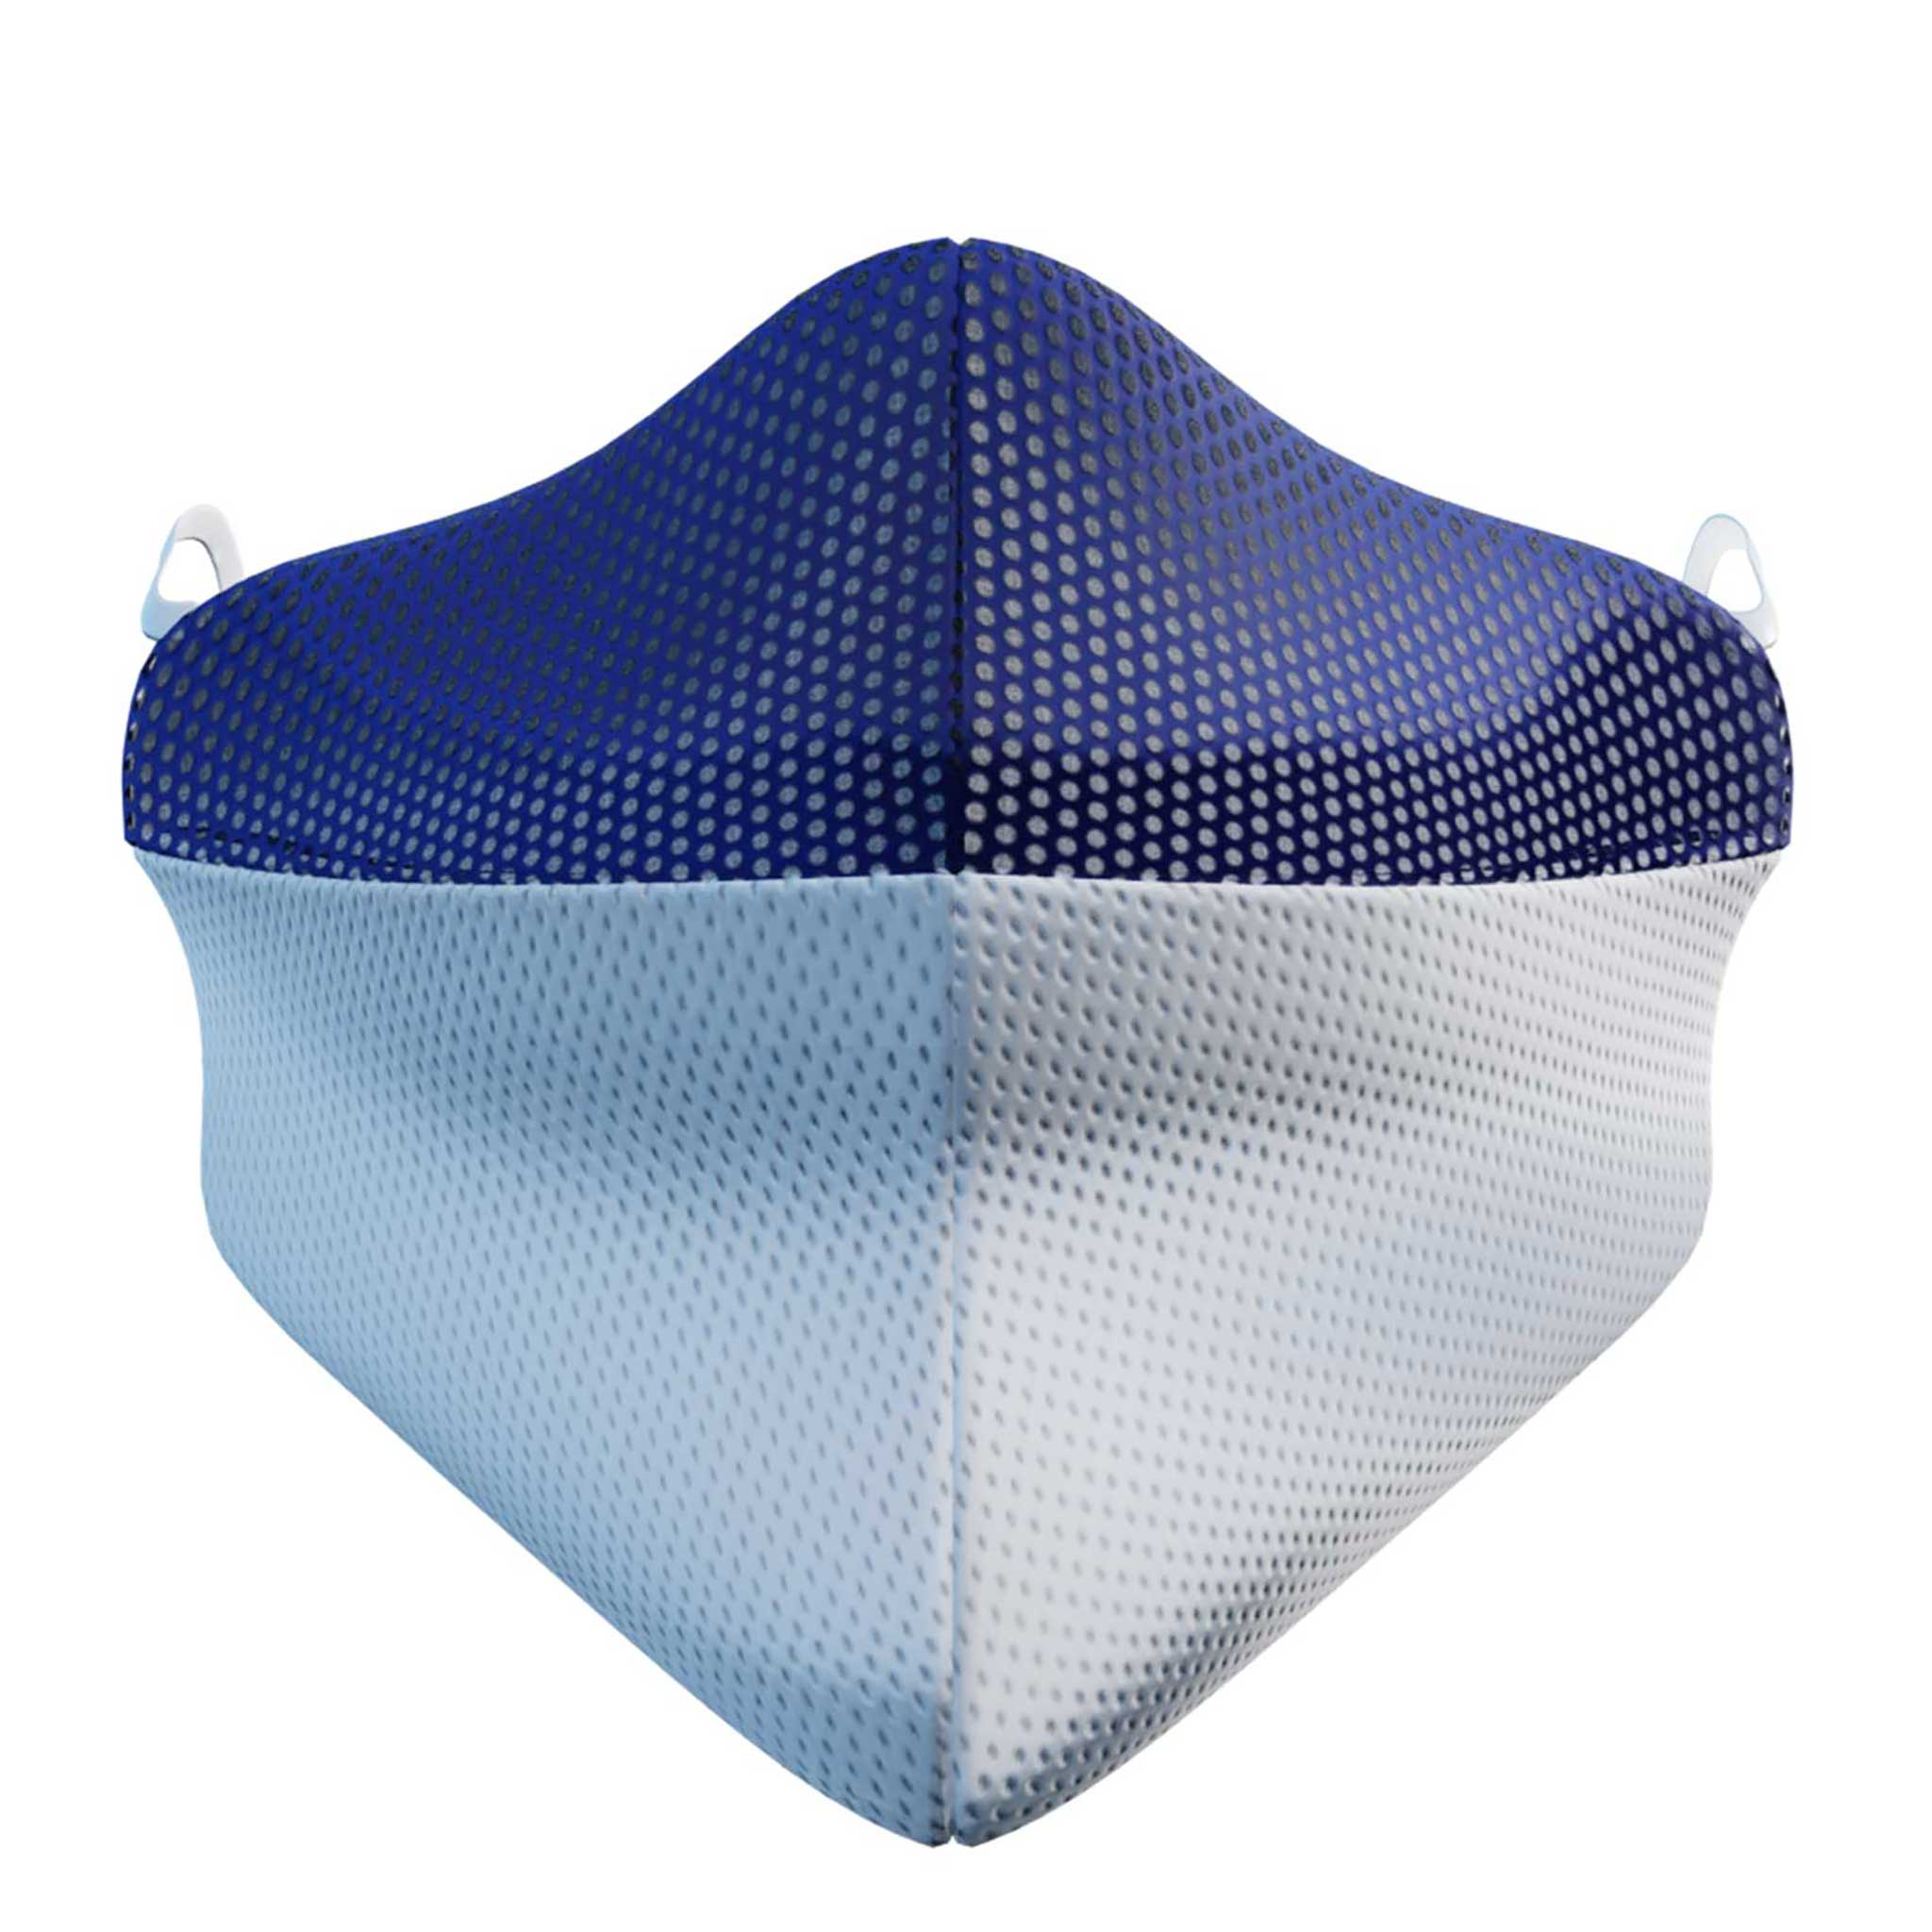 MisfitMask - the facemask that wont steam up your glasses., Protective Masks - Image 10